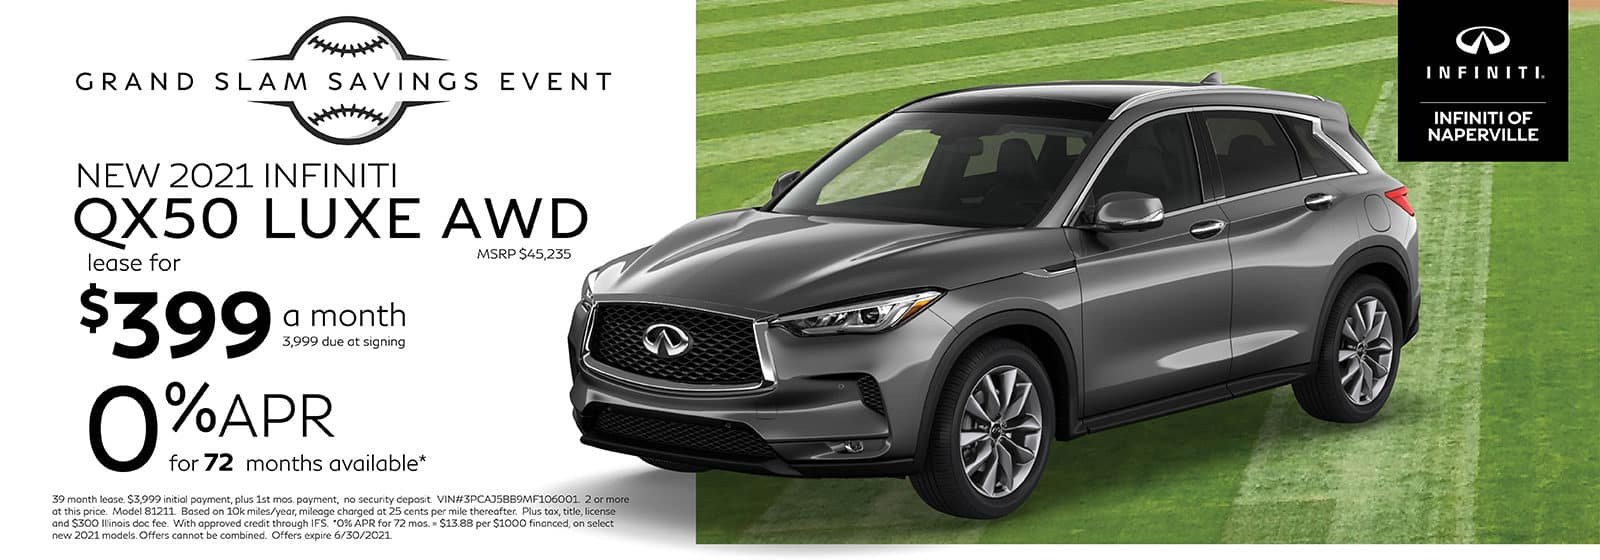 2021 INFINITI QX55 Lease or Finance Offer   INFINITI of Naperville